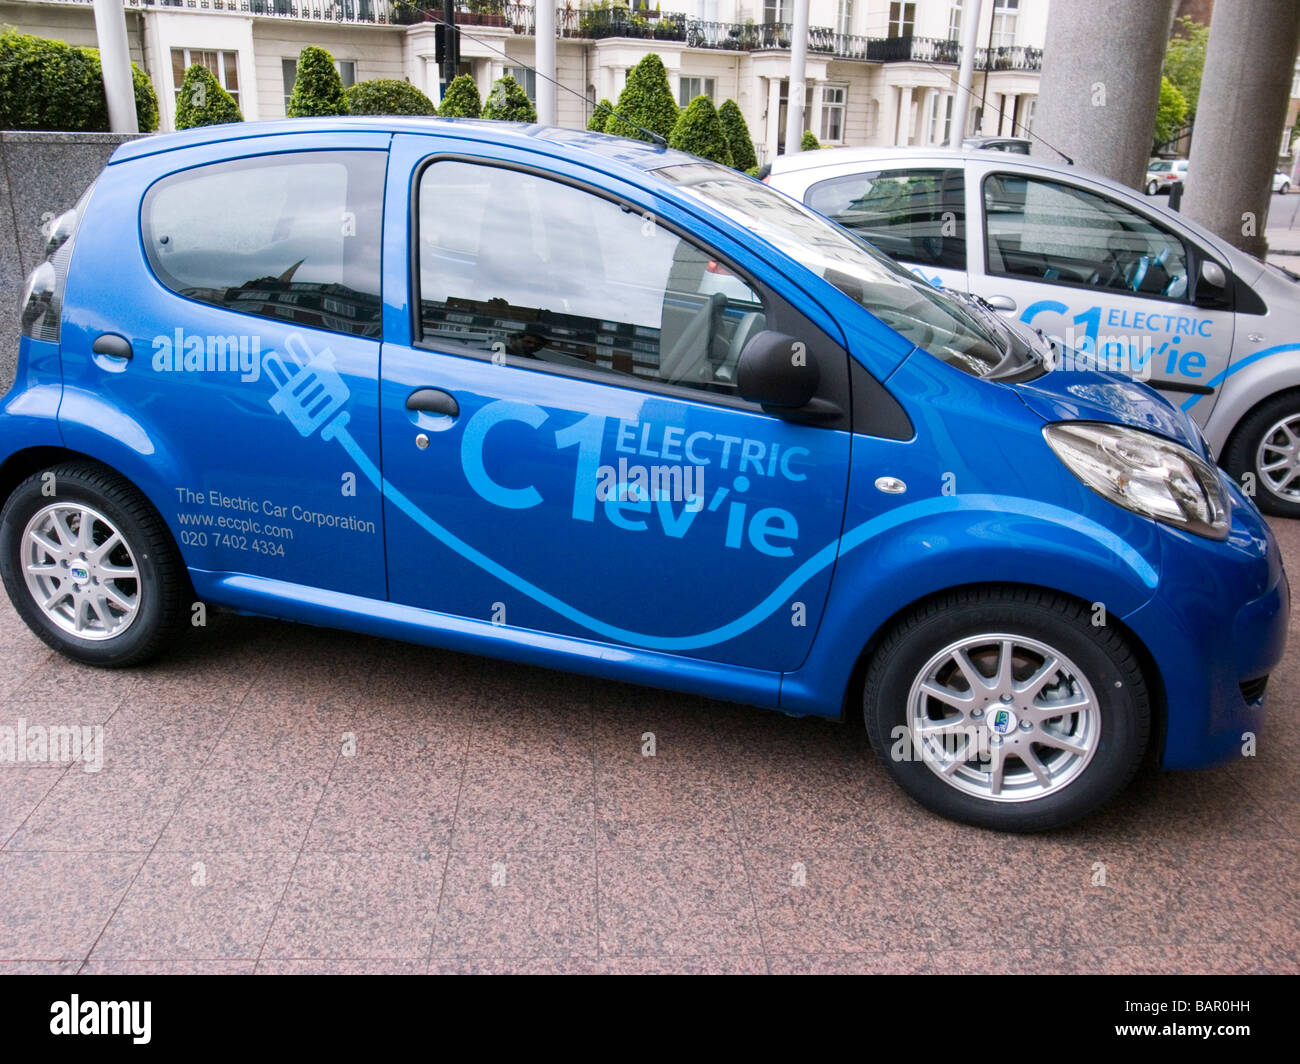 C1 ev'ie electric car based on Citroen C1 from the Electric Car Corporation, Launched in London 30 April 2009 - Stock Image